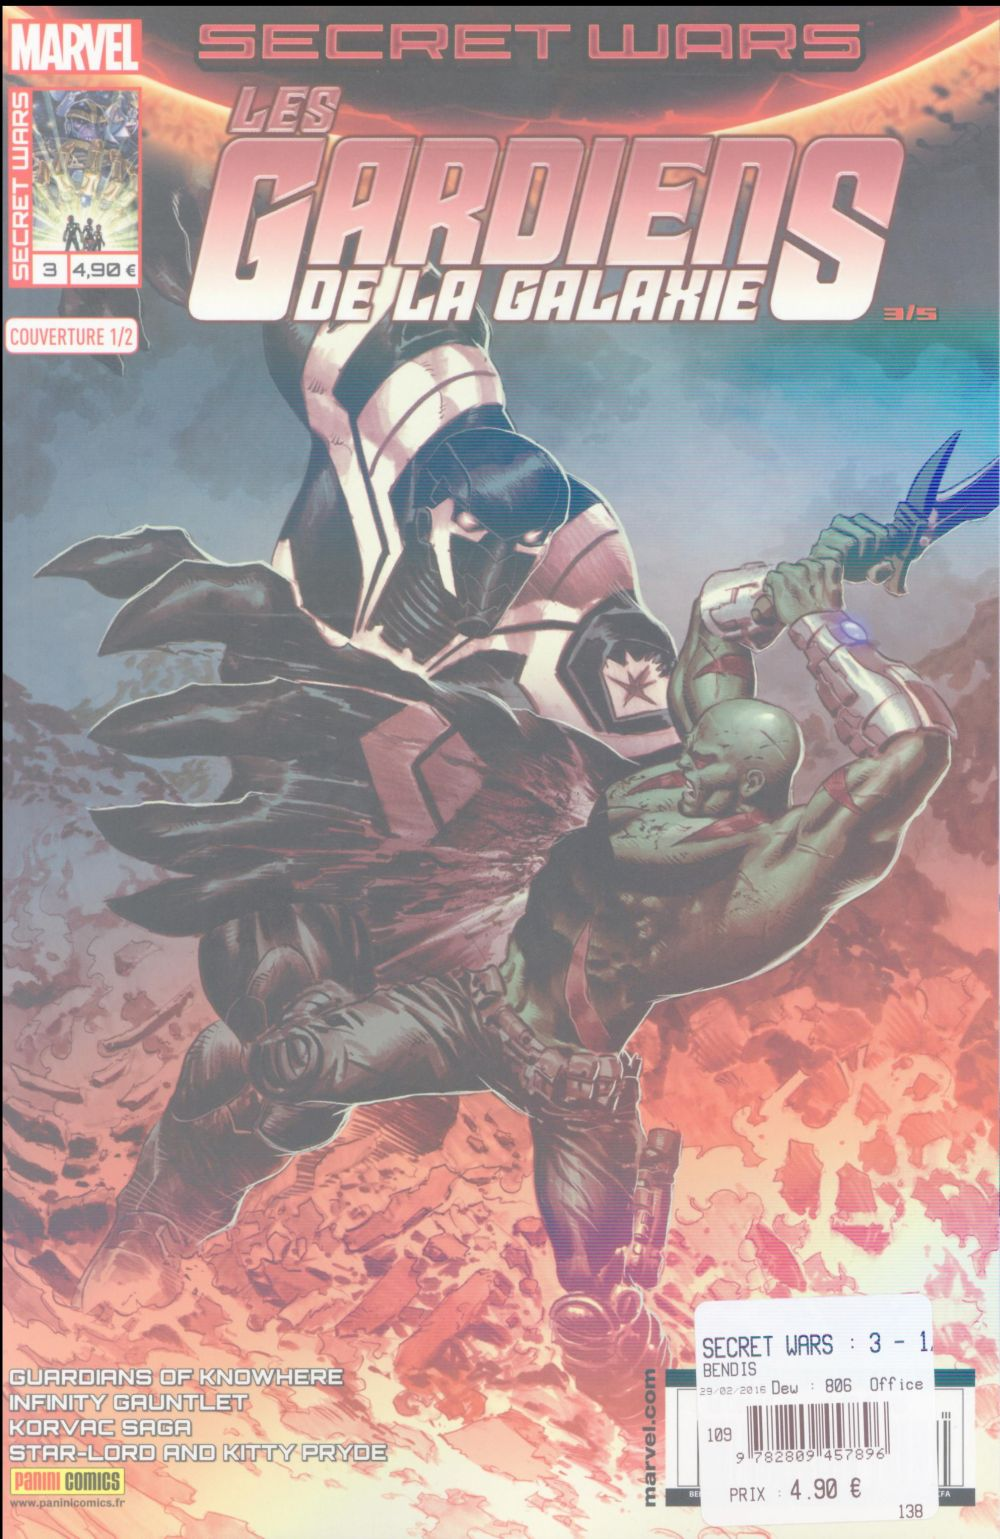 SECRET WARS : 3 - 1/2 LES GARDIENS DE LA GALAXIE M.DEODATO JR